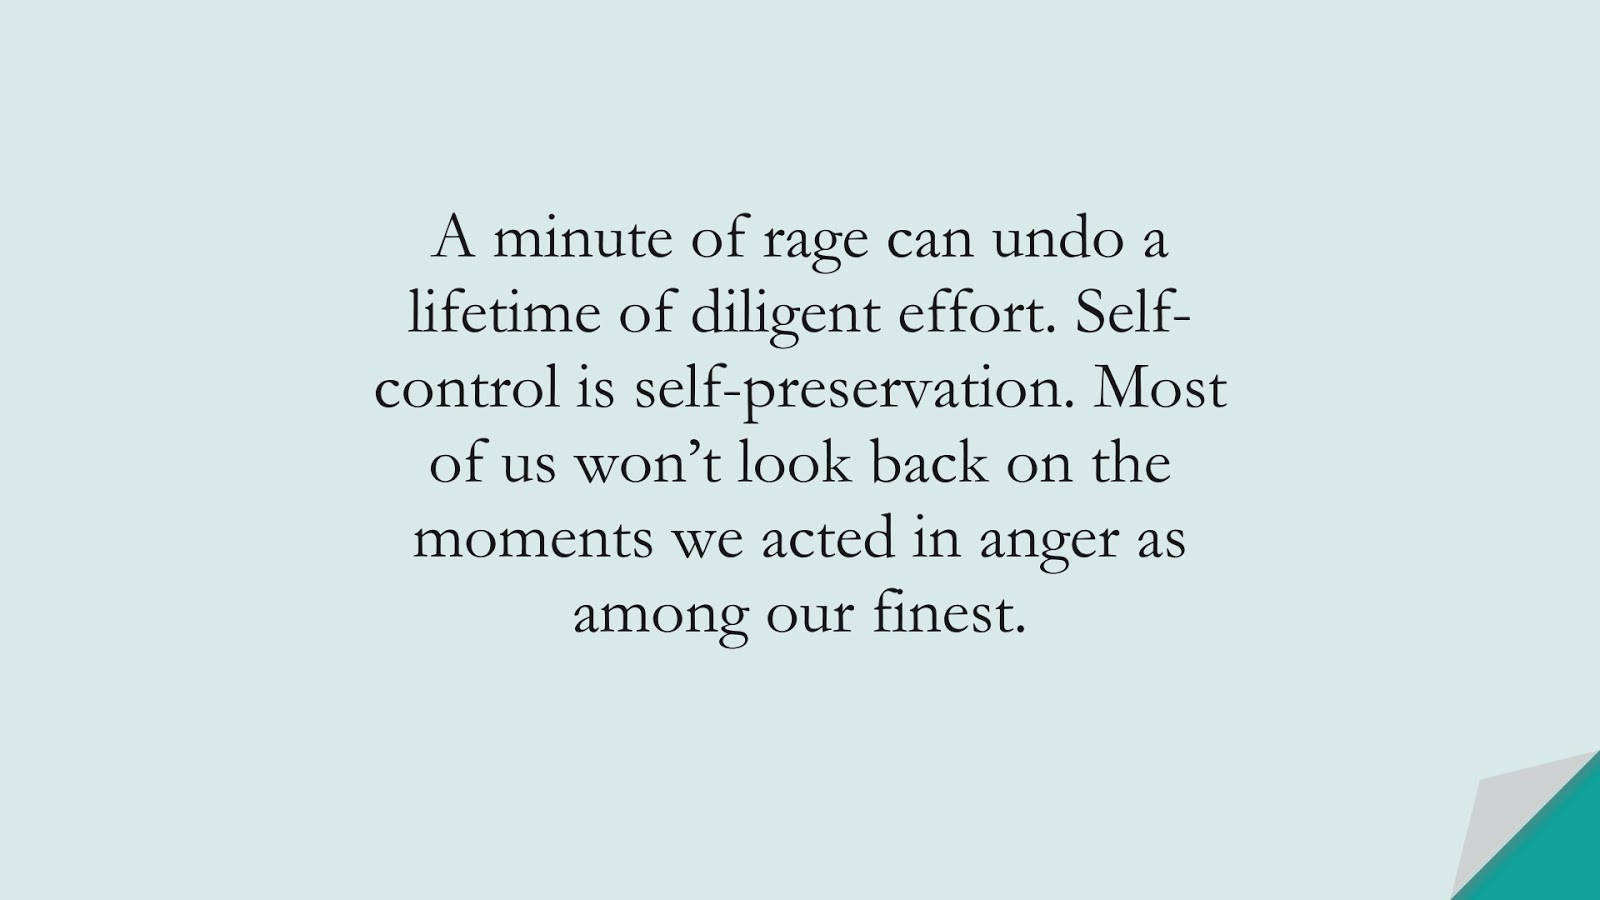 A minute of rage can undo a lifetime of diligent effort. Self-control is self-preservation. Most of us won't look back on the moments we acted in anger as among our finest.FALSE